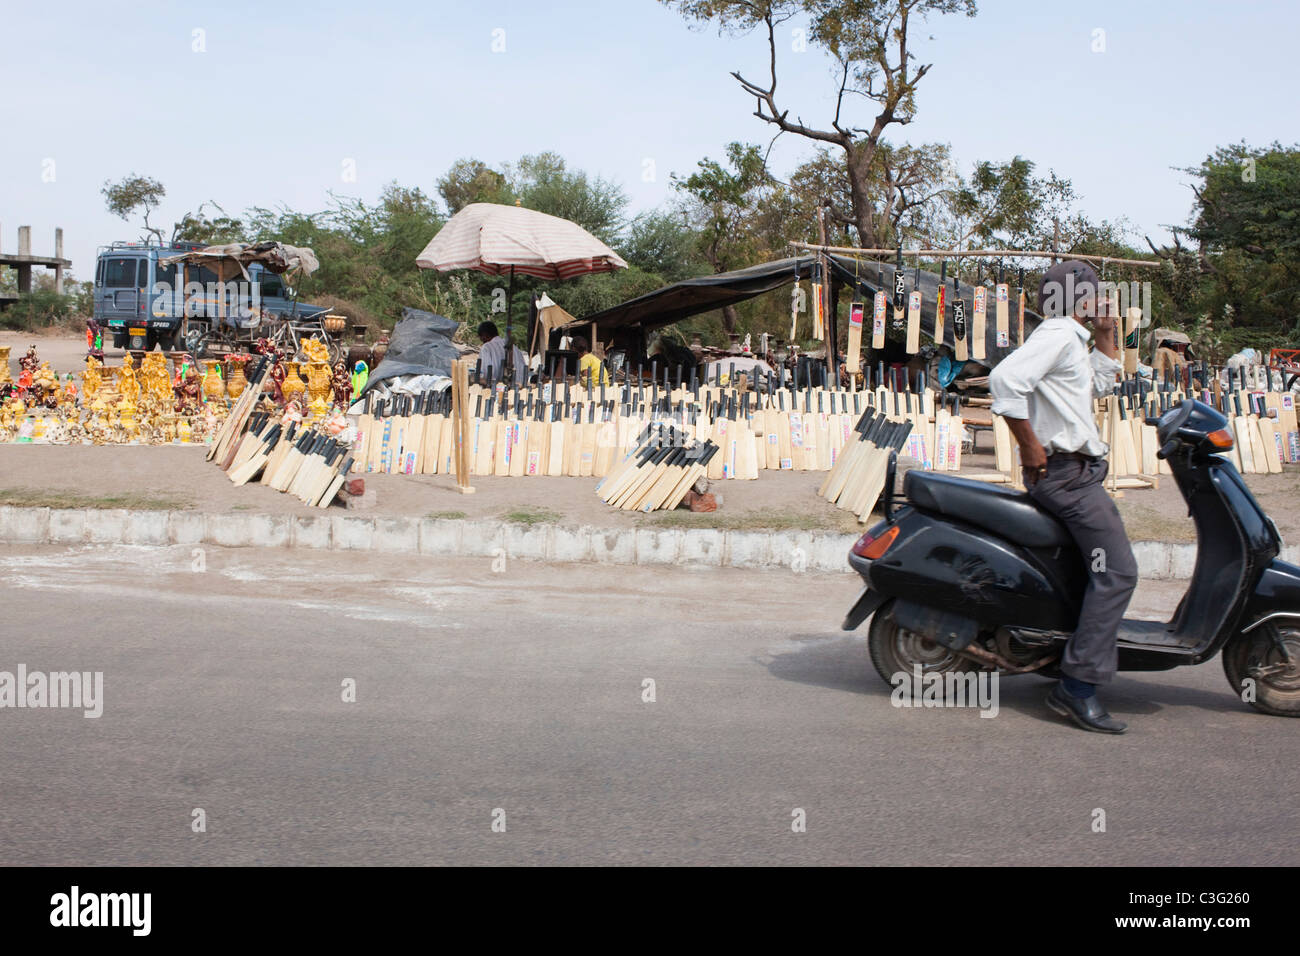 Man sitting on a scooter on the road, Ahmedabad, Gujarat, India - Stock Image